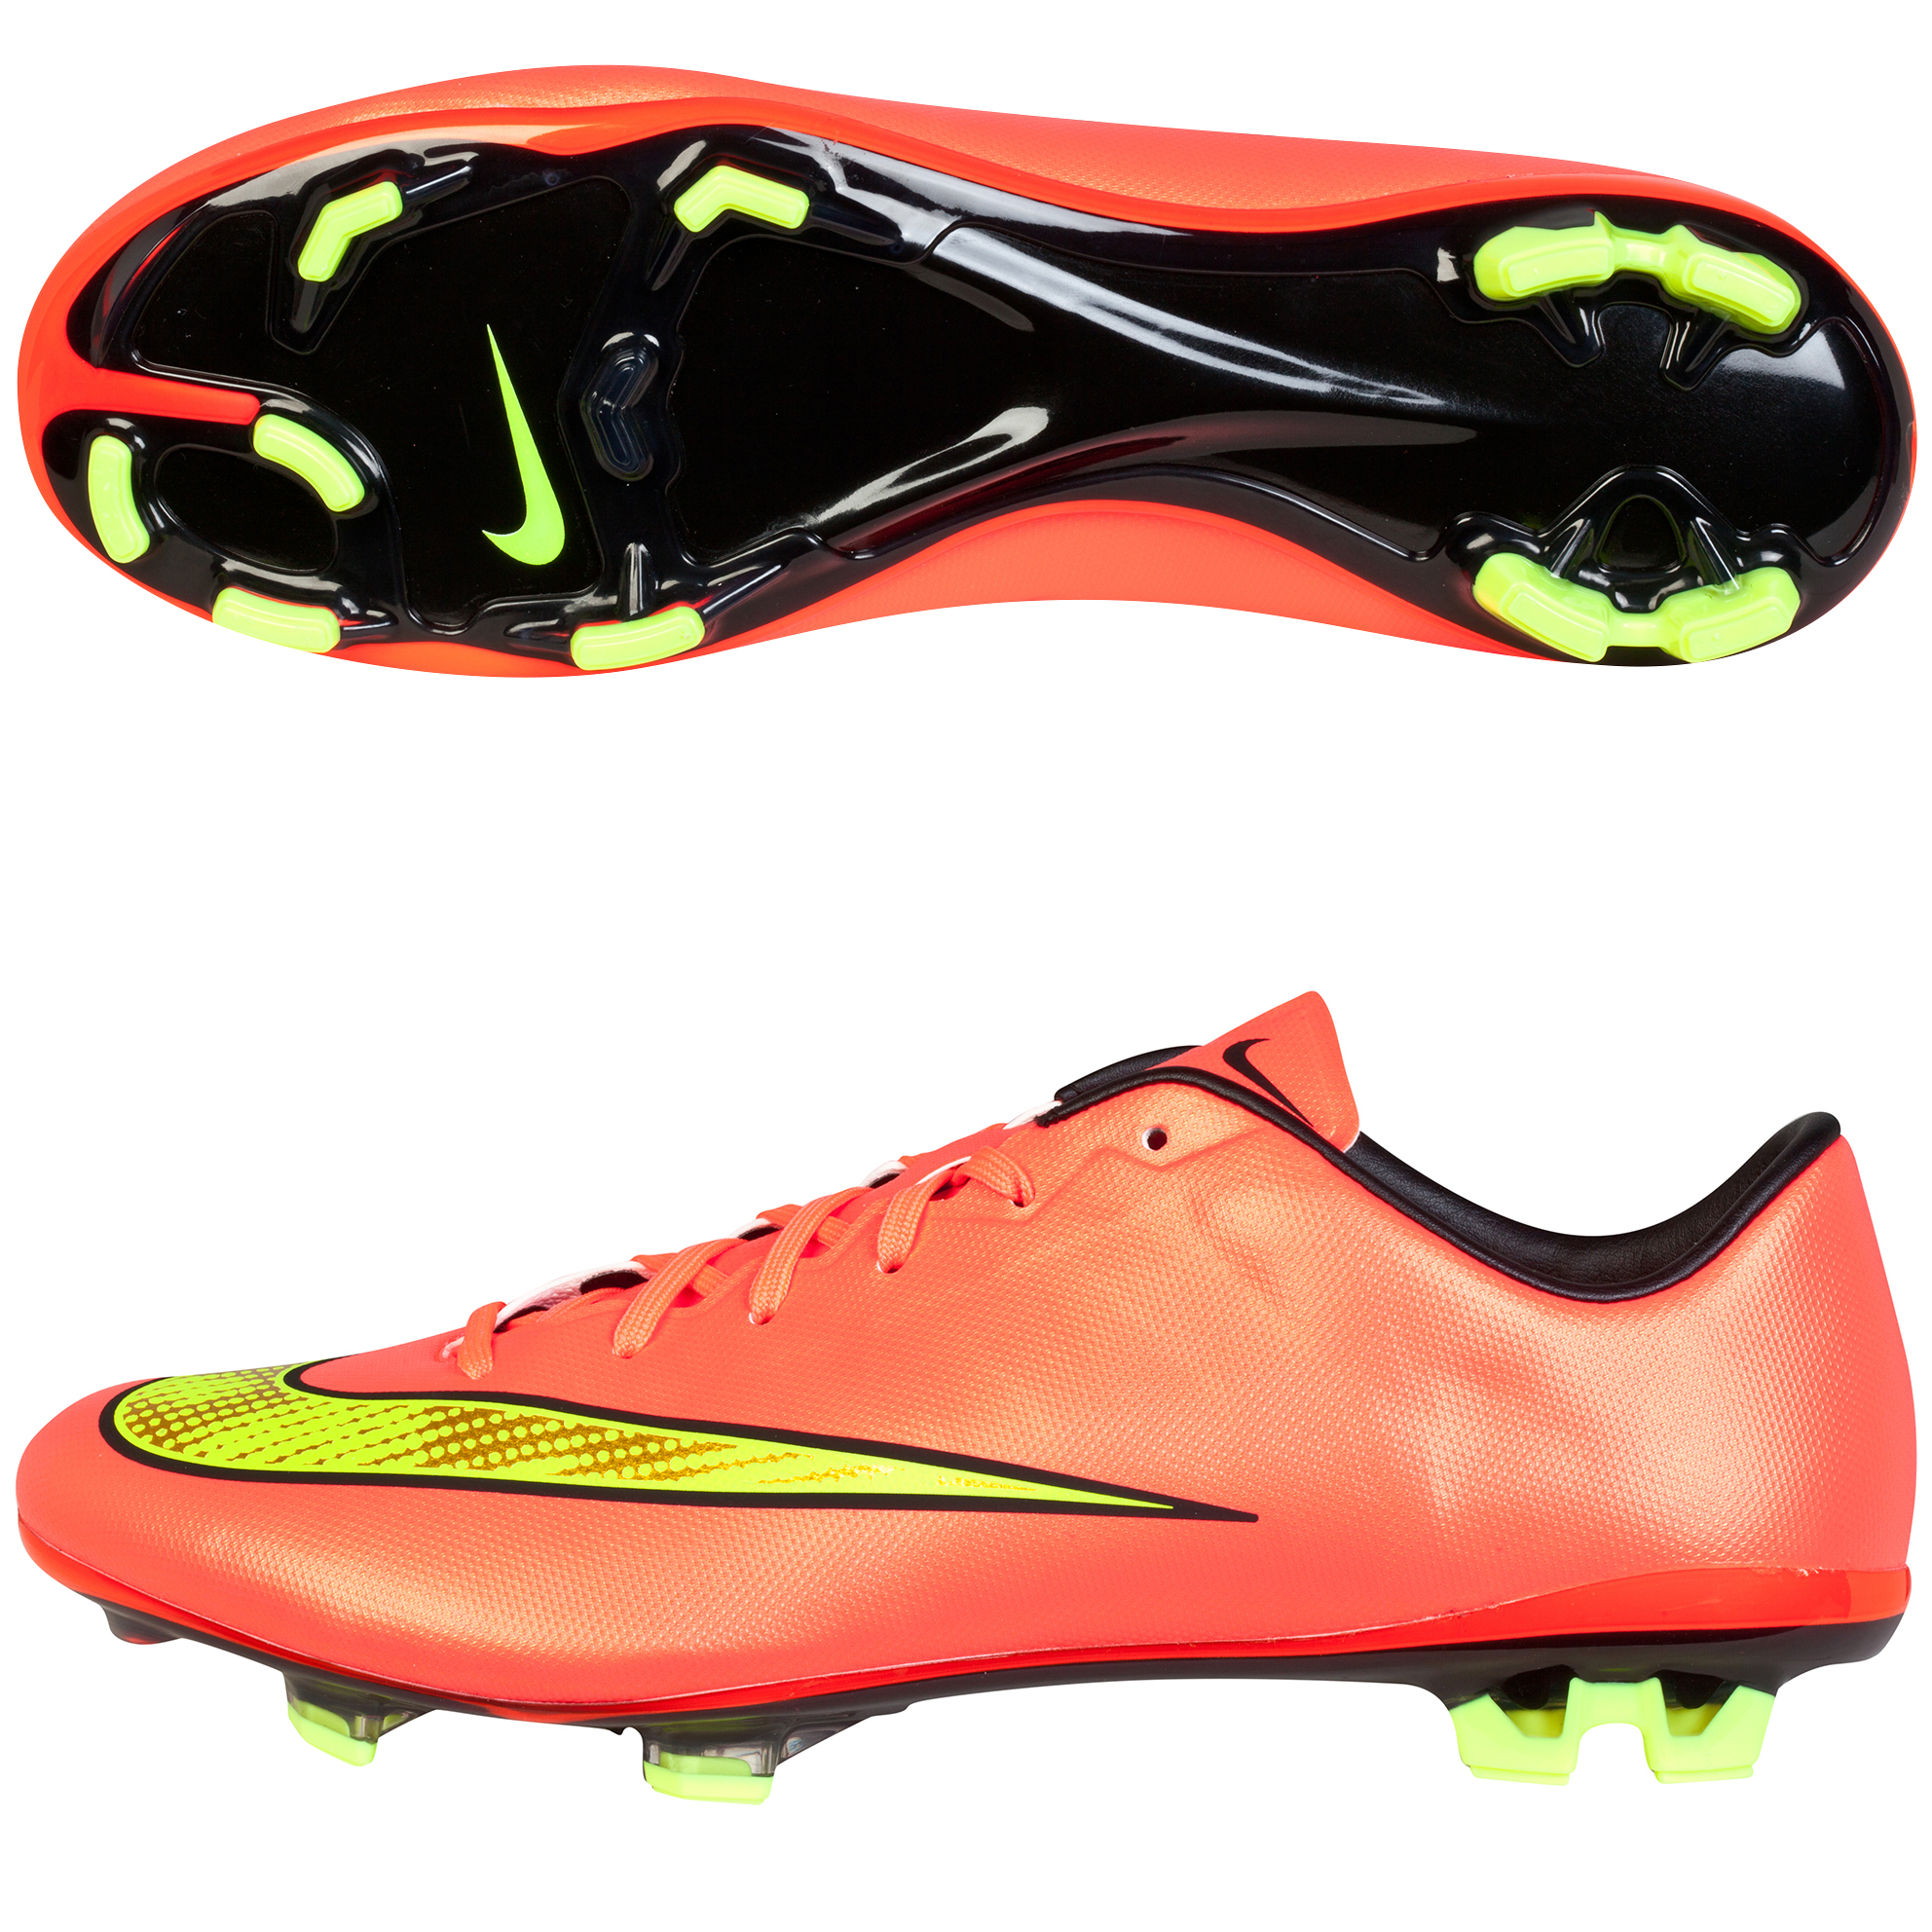 Nike Mercurial Veloce II Firm Ground Football Boots Pink